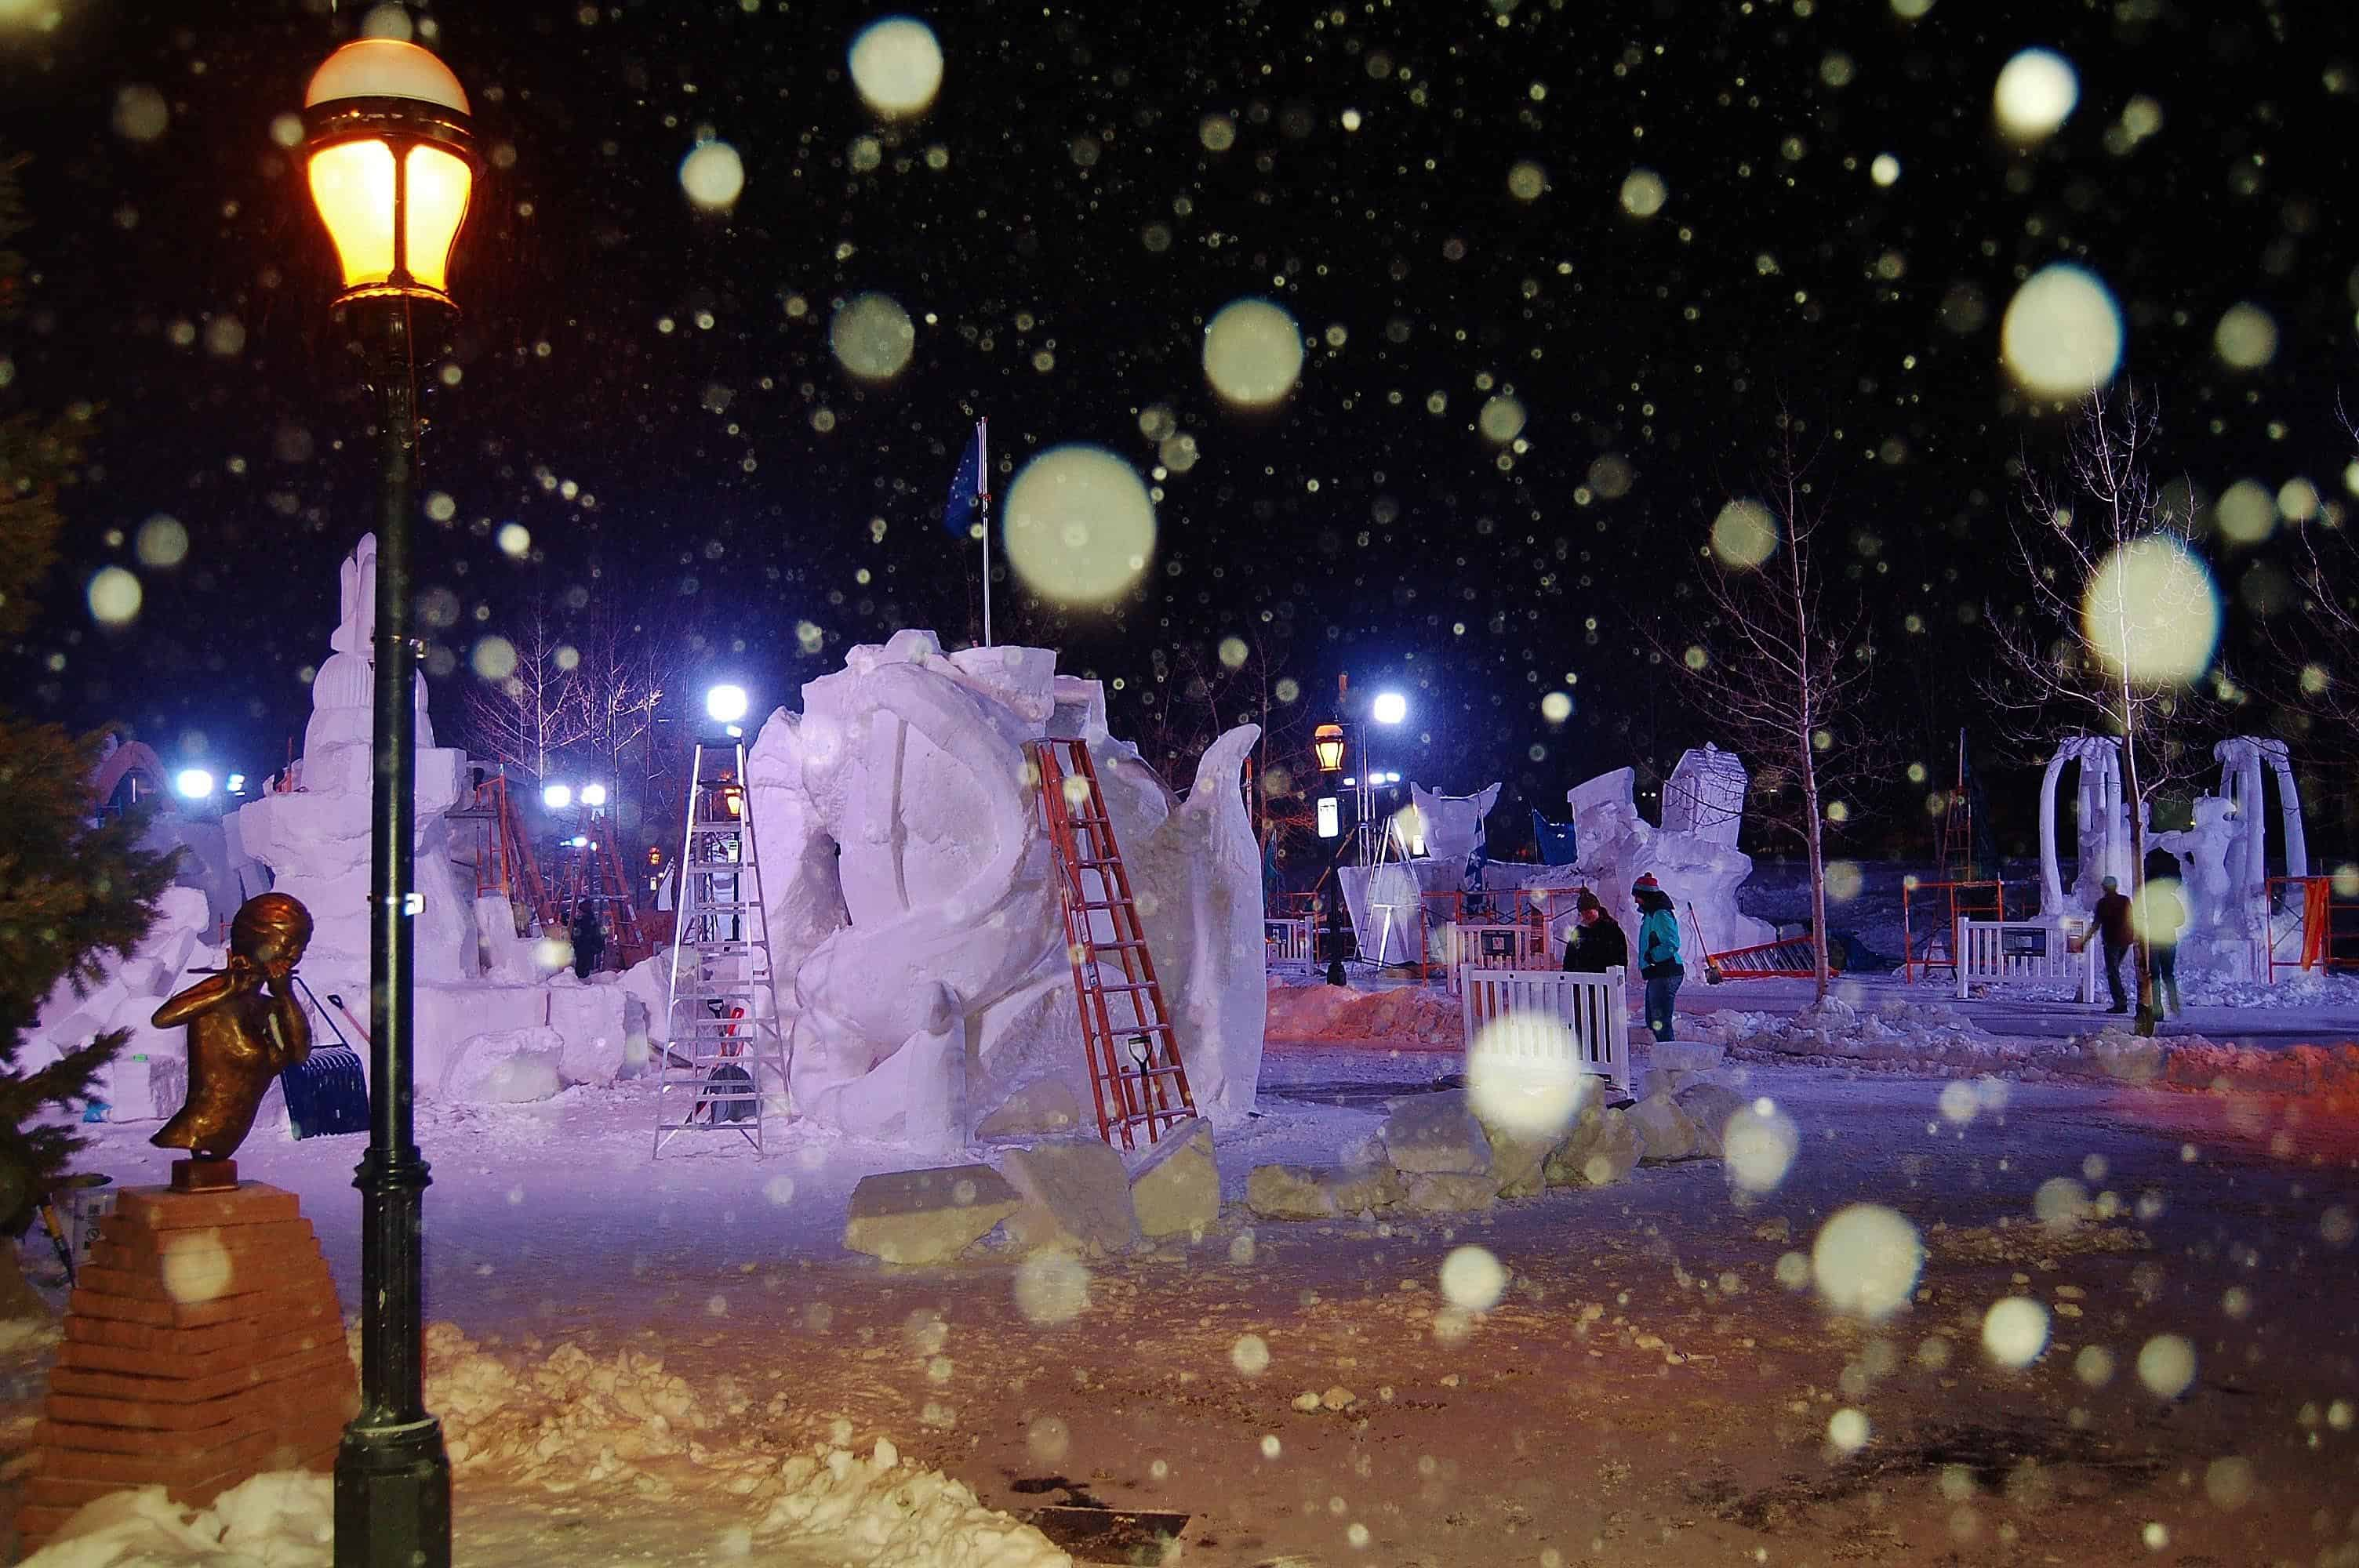 The Friday before the close of sculpting, teams work through the night to complete their masterpieces, each constructed from a 12-foot-tall, 20-ton block of Colorado snow.